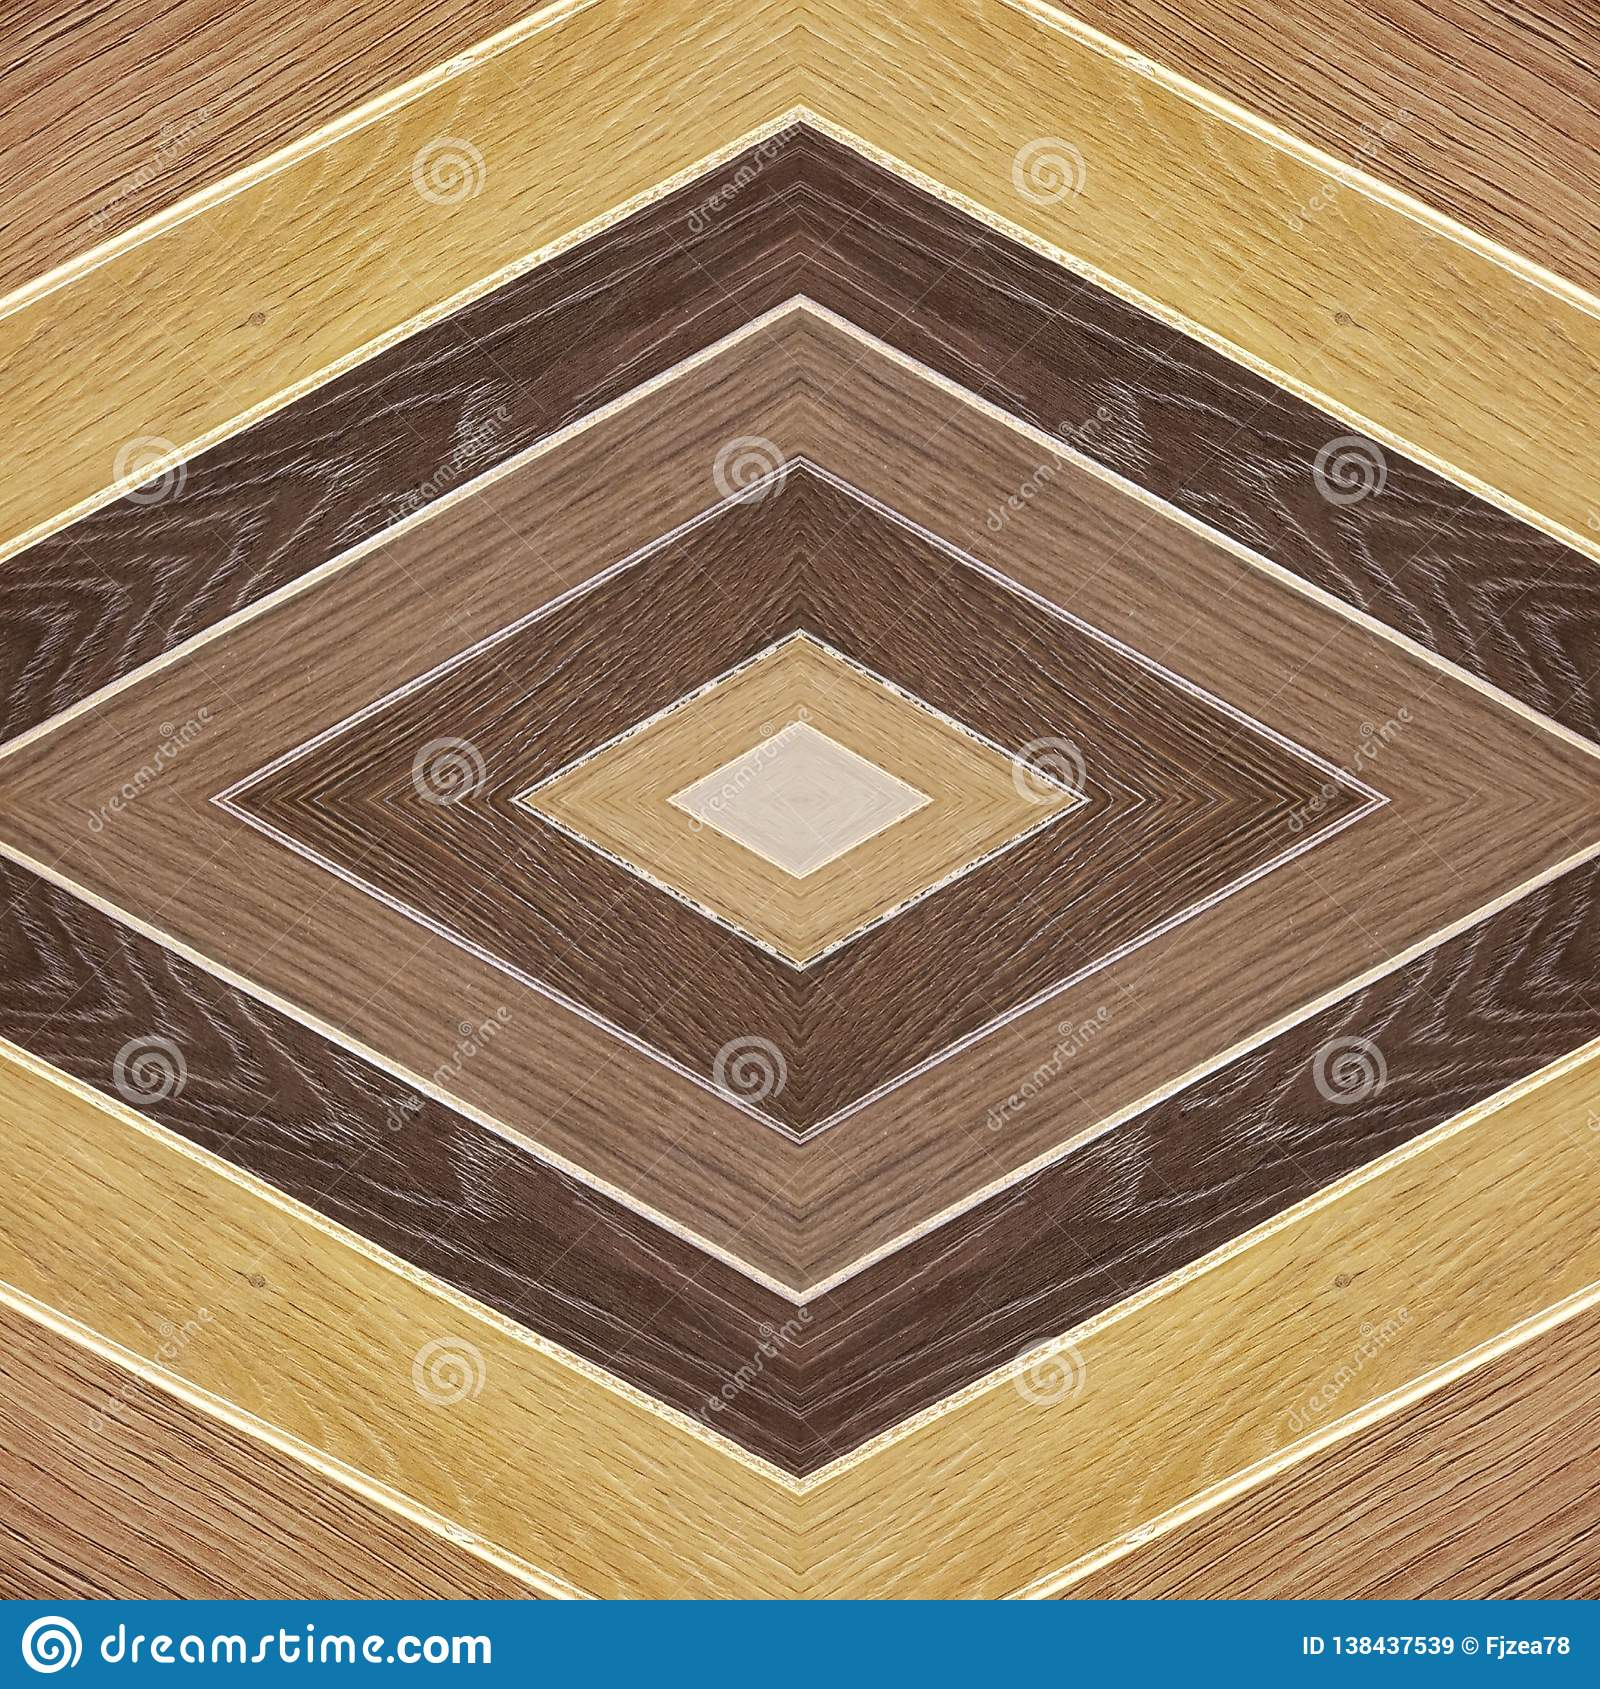 abstract design in wood material with various colors, background and texture